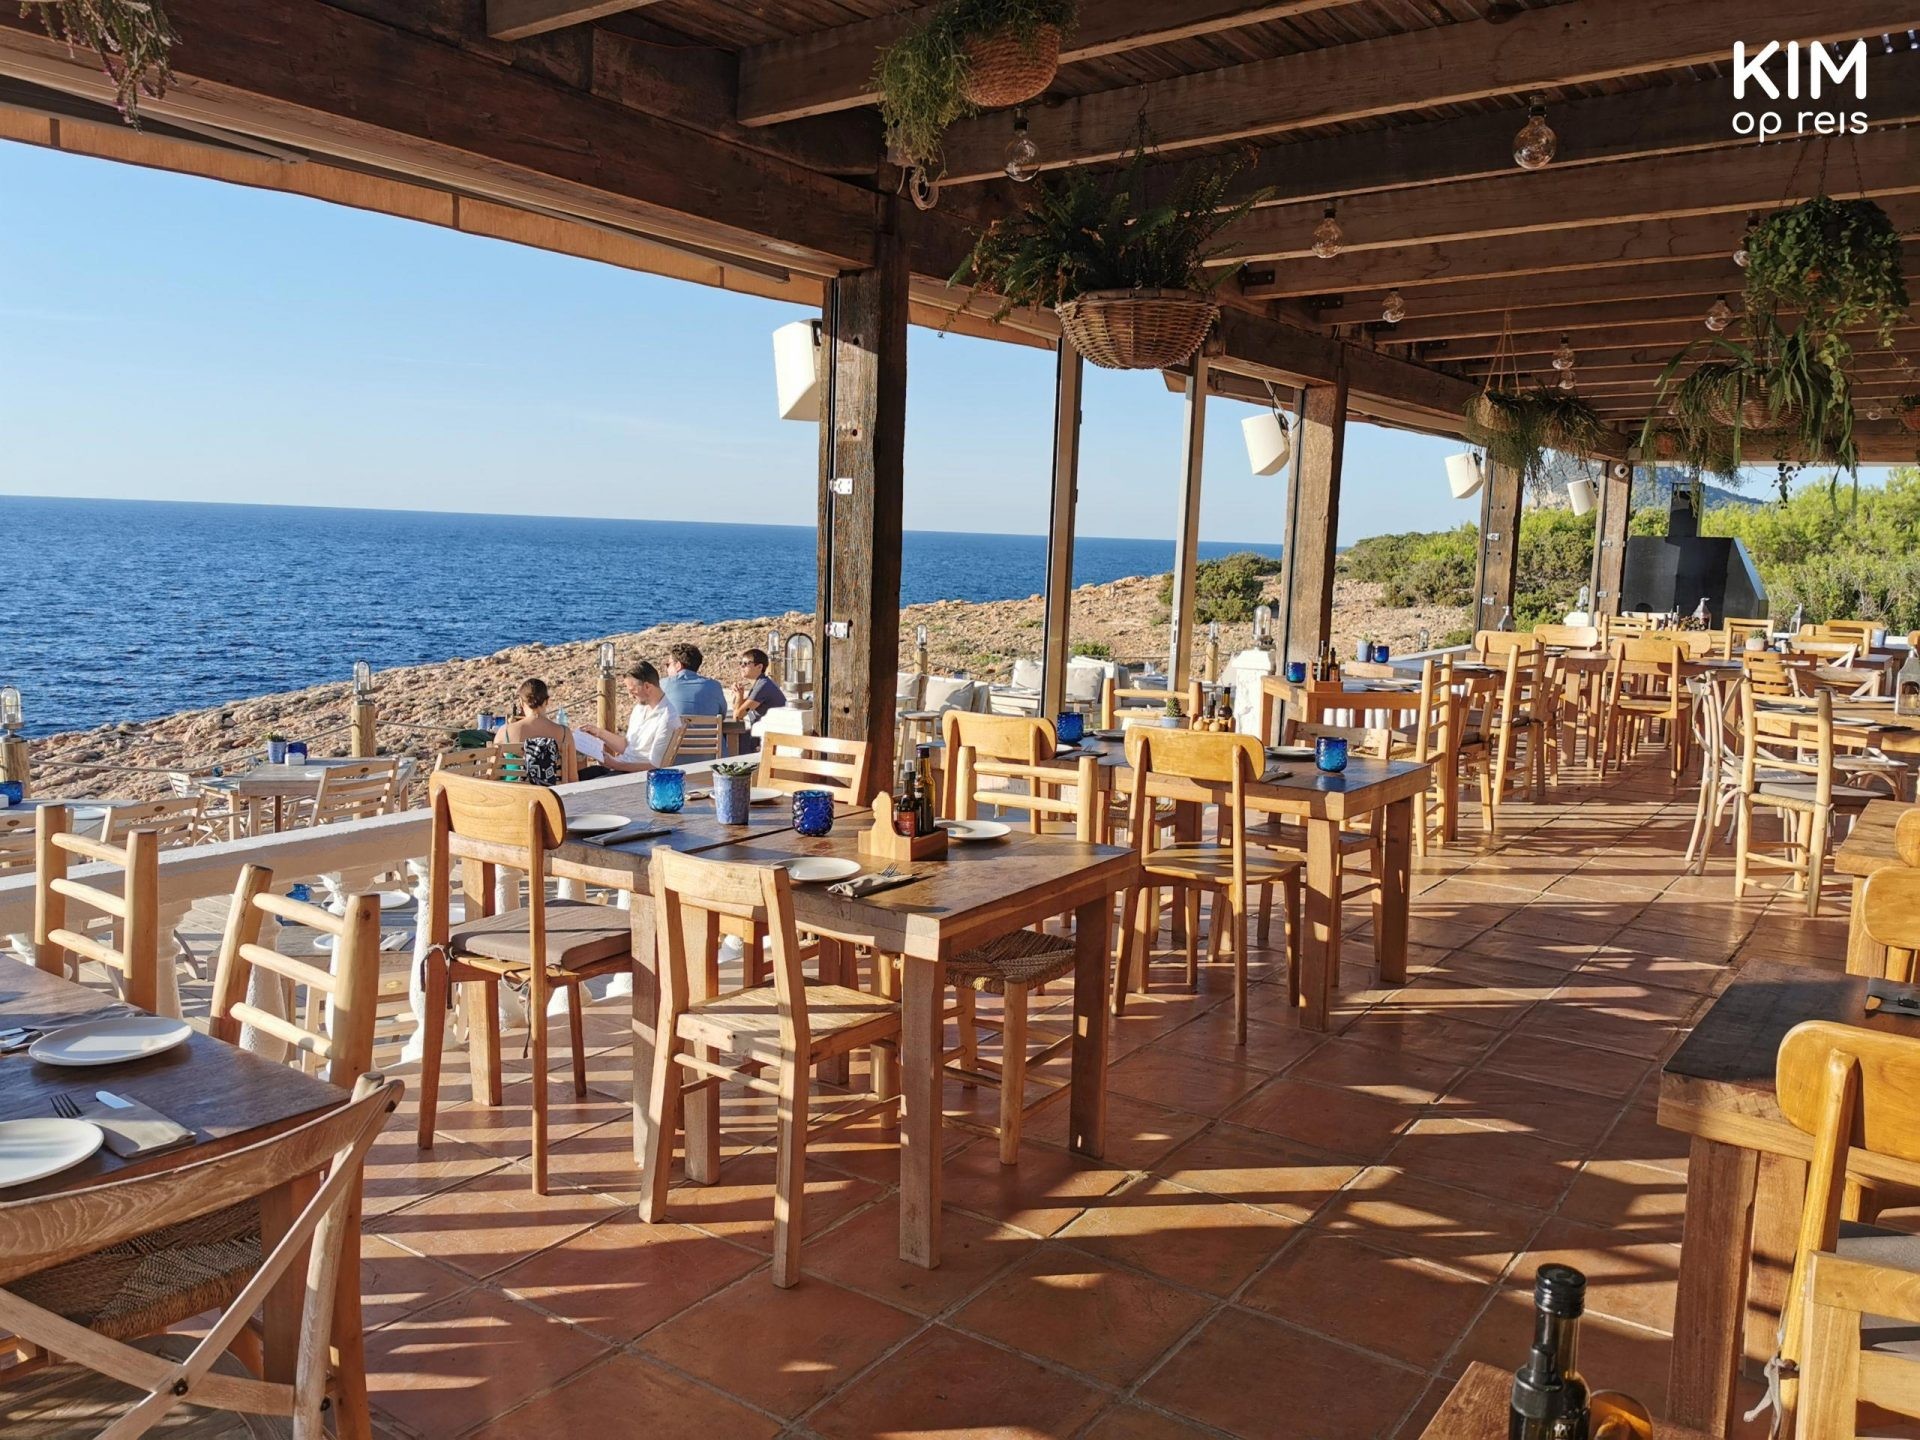 Hostal La Torre terrace - an almost empty covered terrace with simple wooden tables